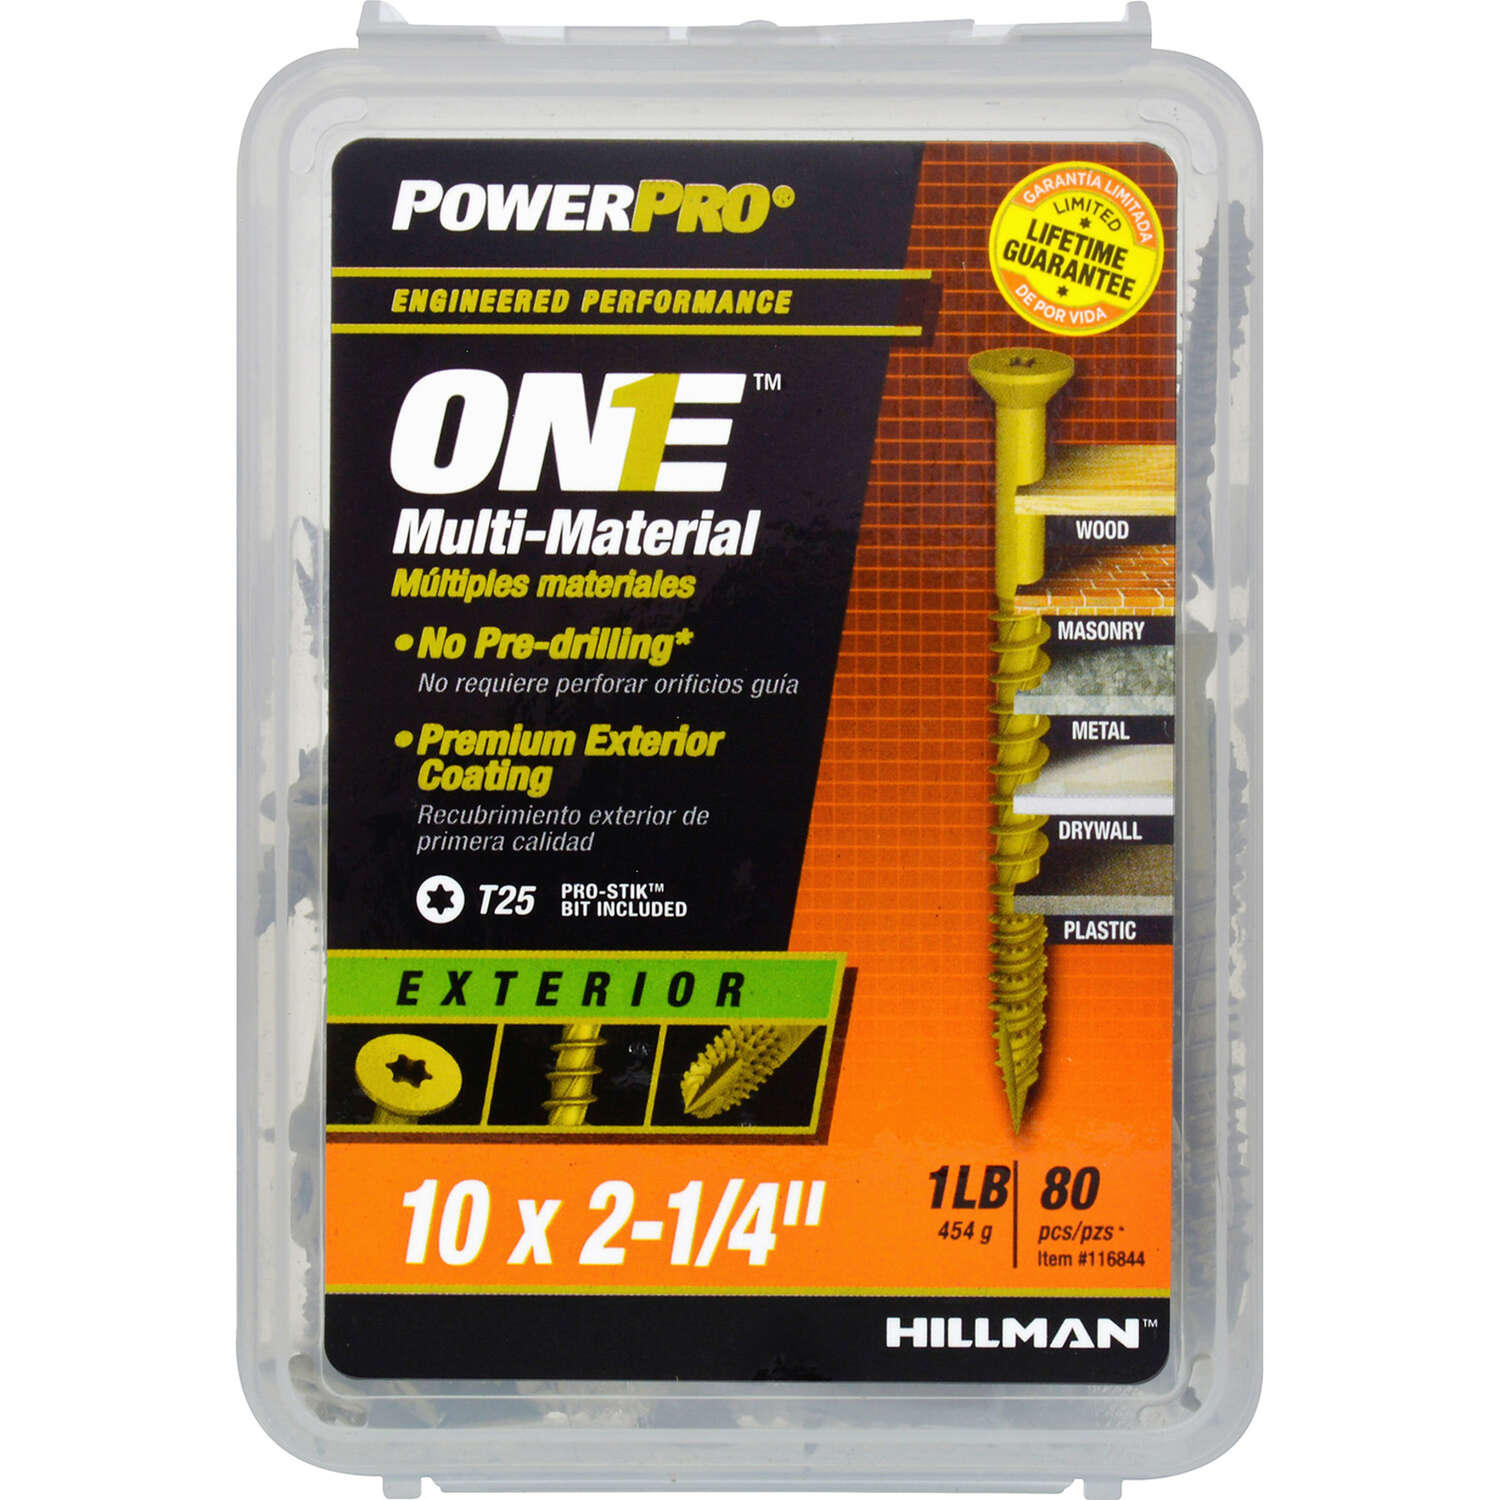 Hillman POWERPRO ONE No. 10 x 2-1/4 in. L Star Flat Head Multi-Material Screw 1 lb. 80 pk